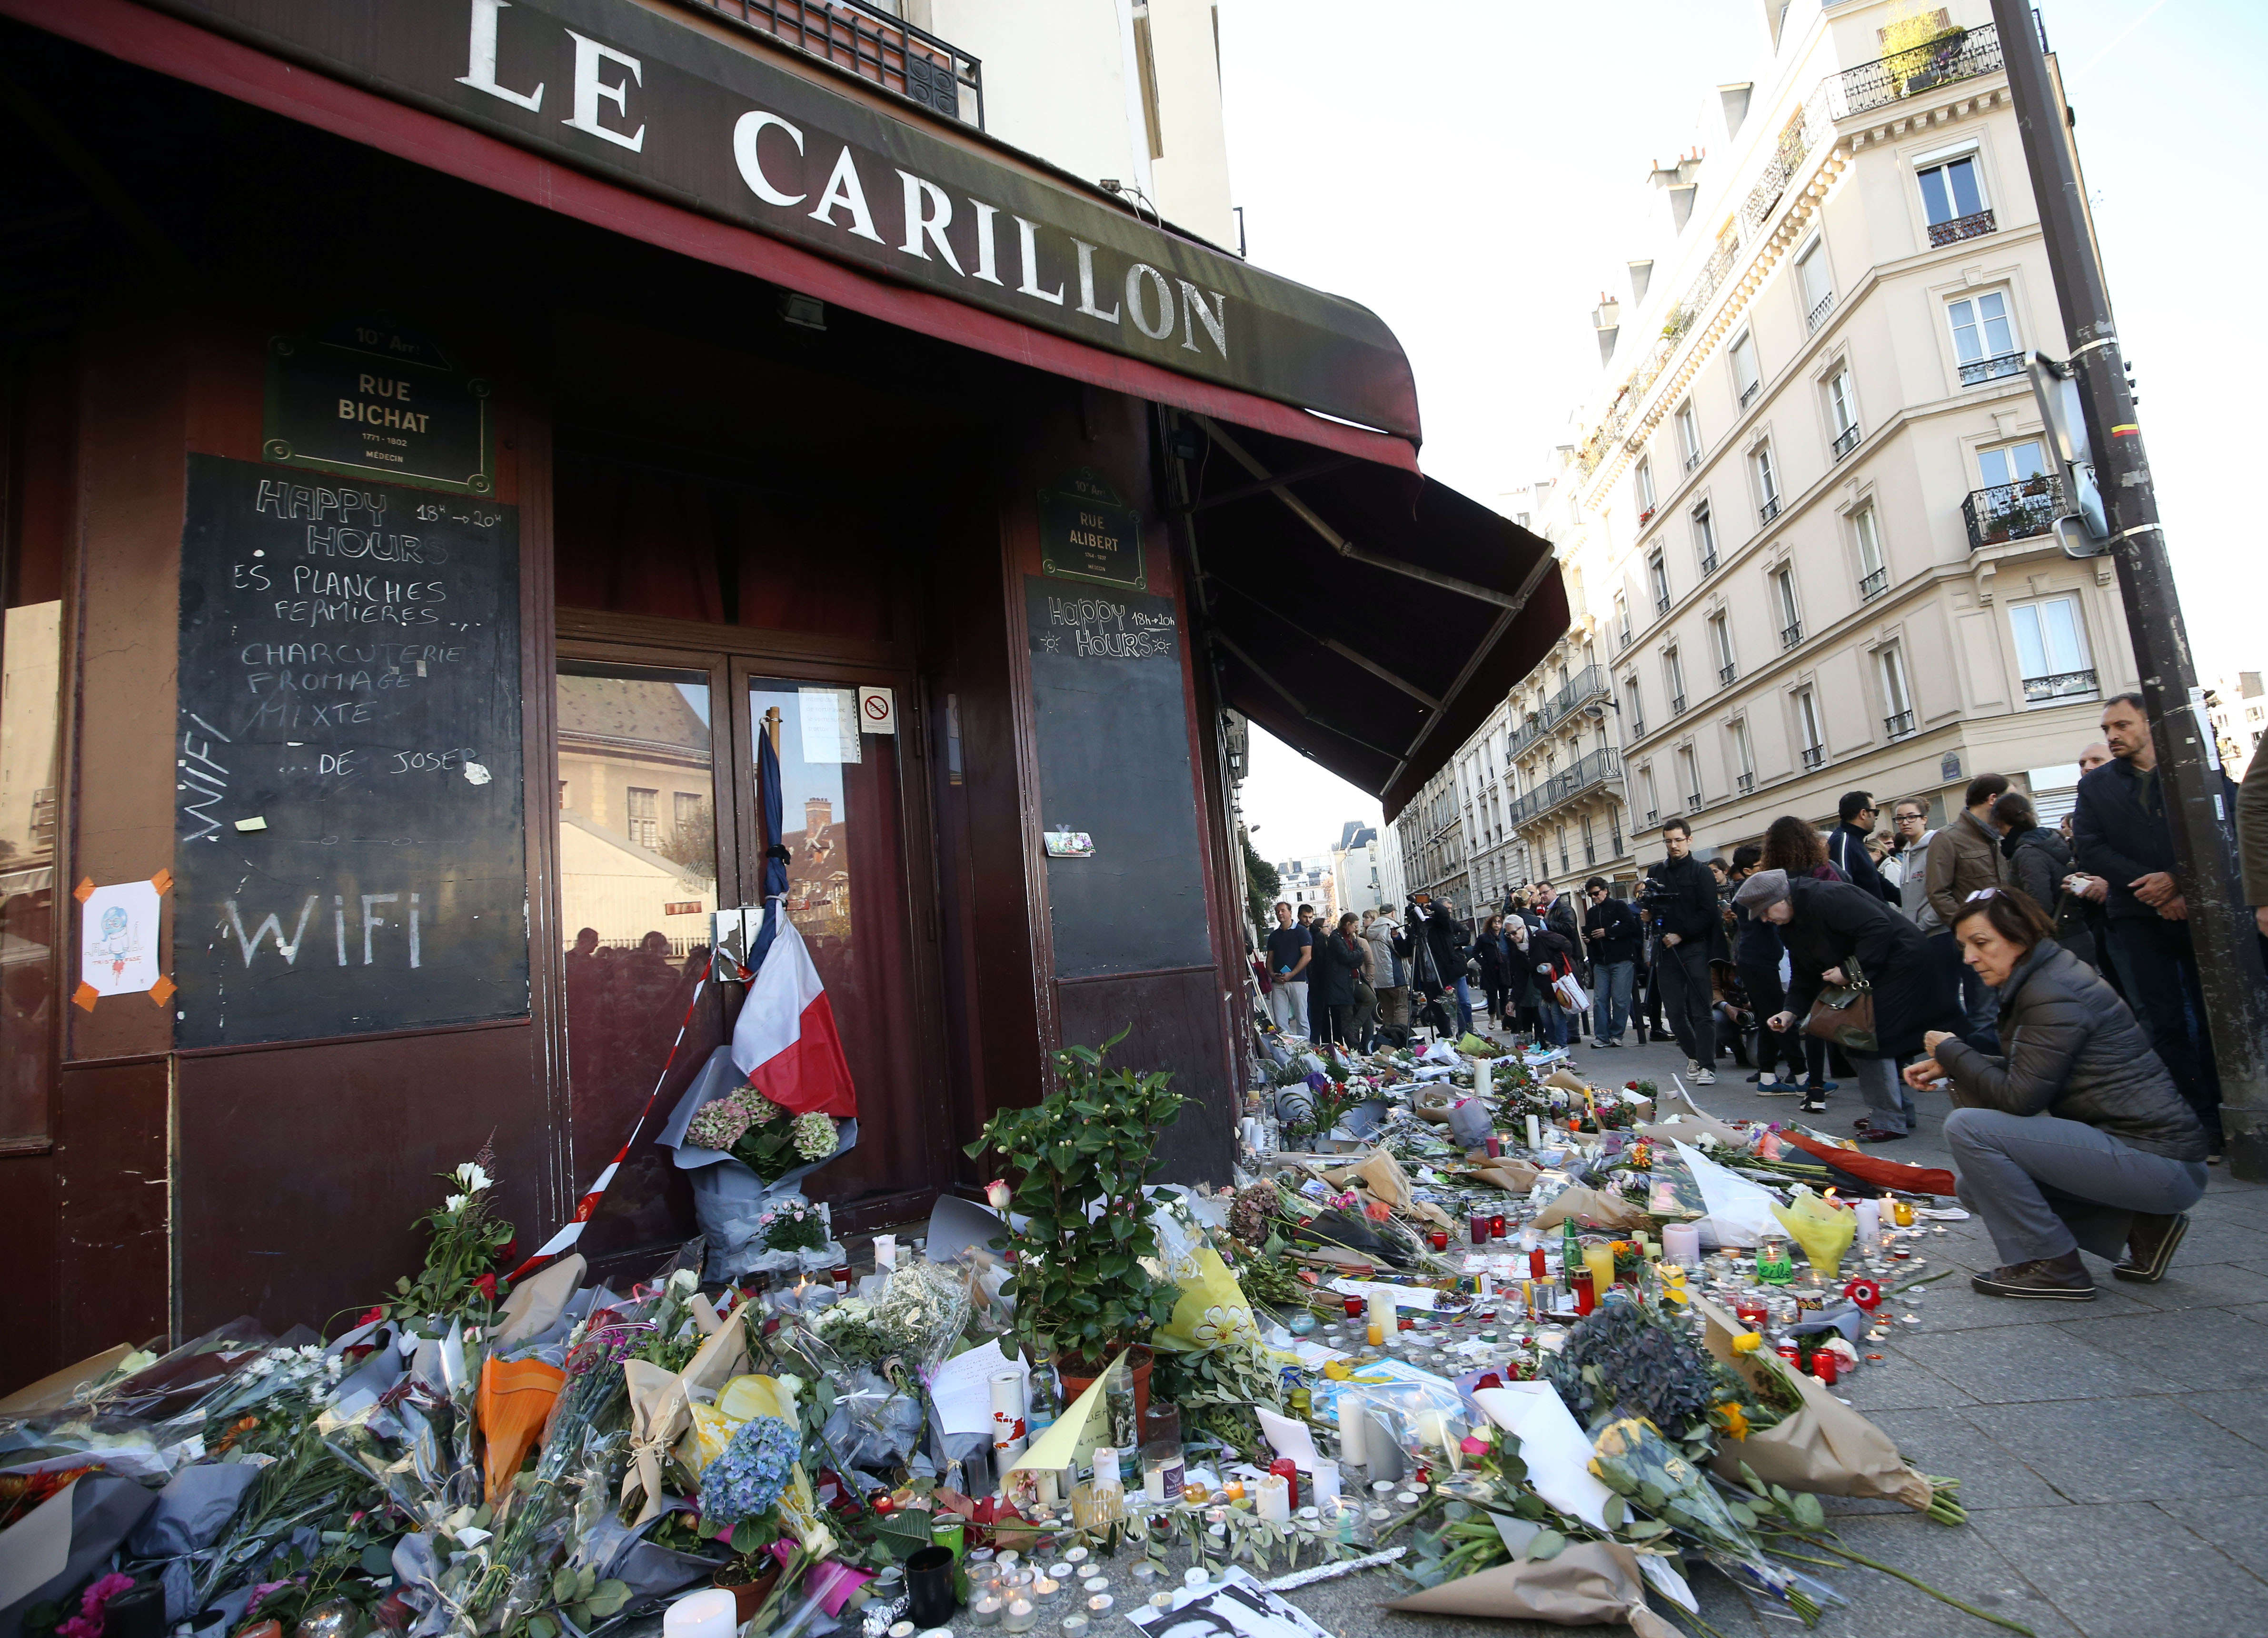 Heres How Police Found The Paris Attack Suspect, And Its Pretty Unusual paris1